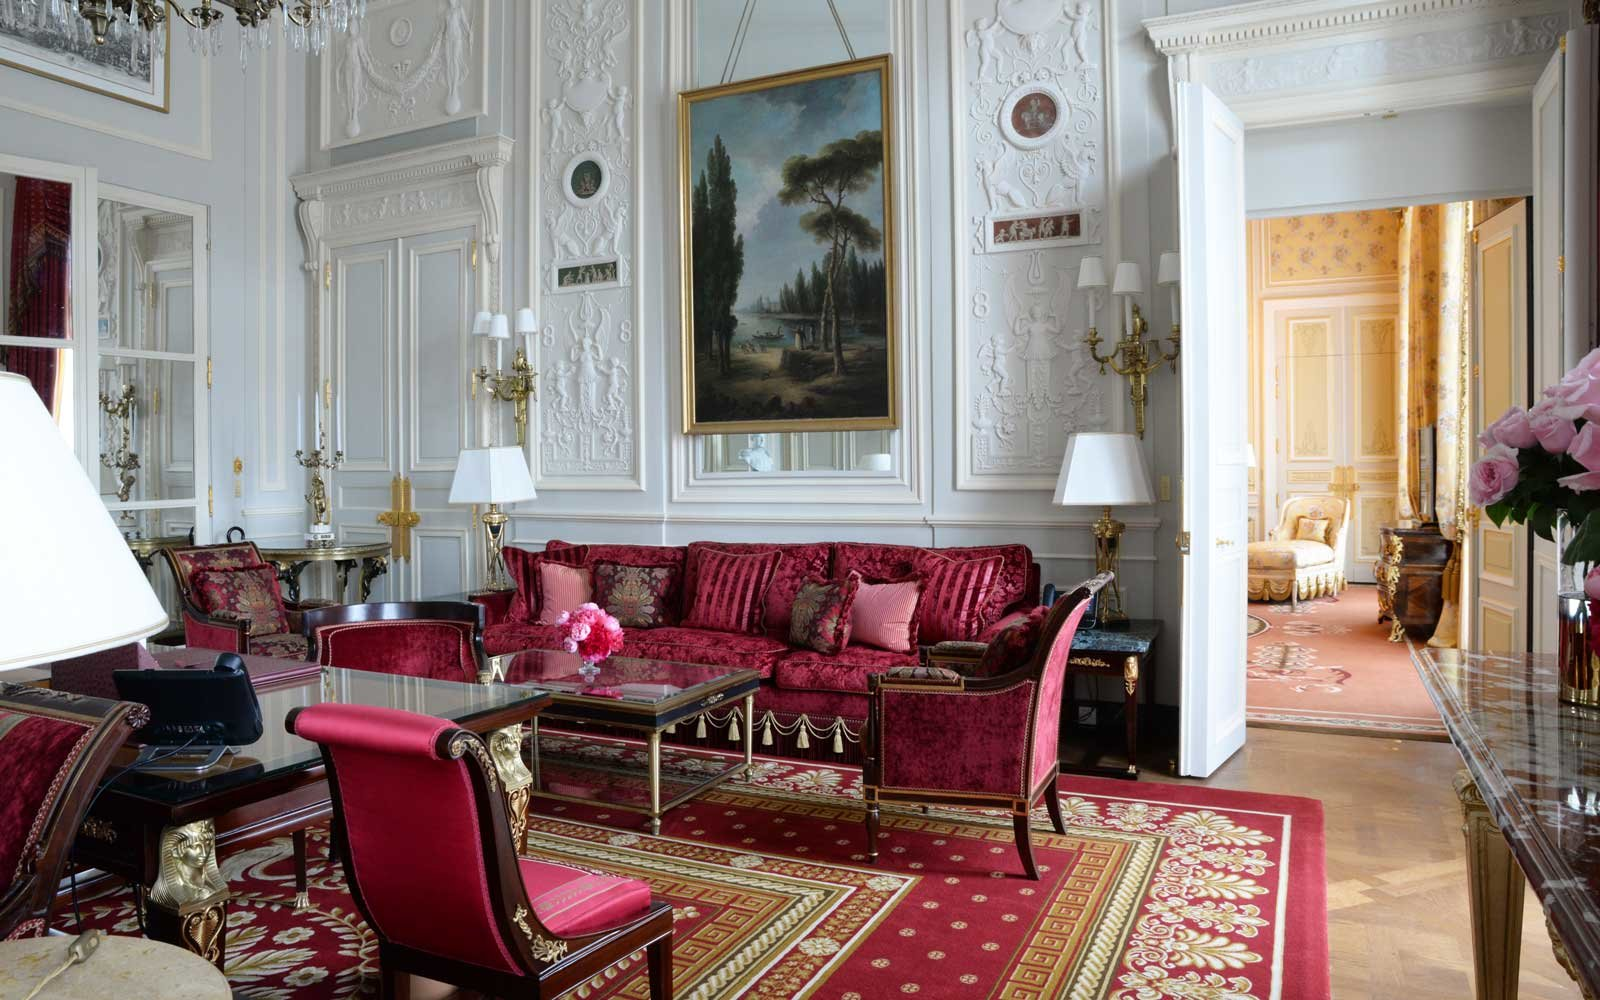 The Ritz, Paris — Paris, France